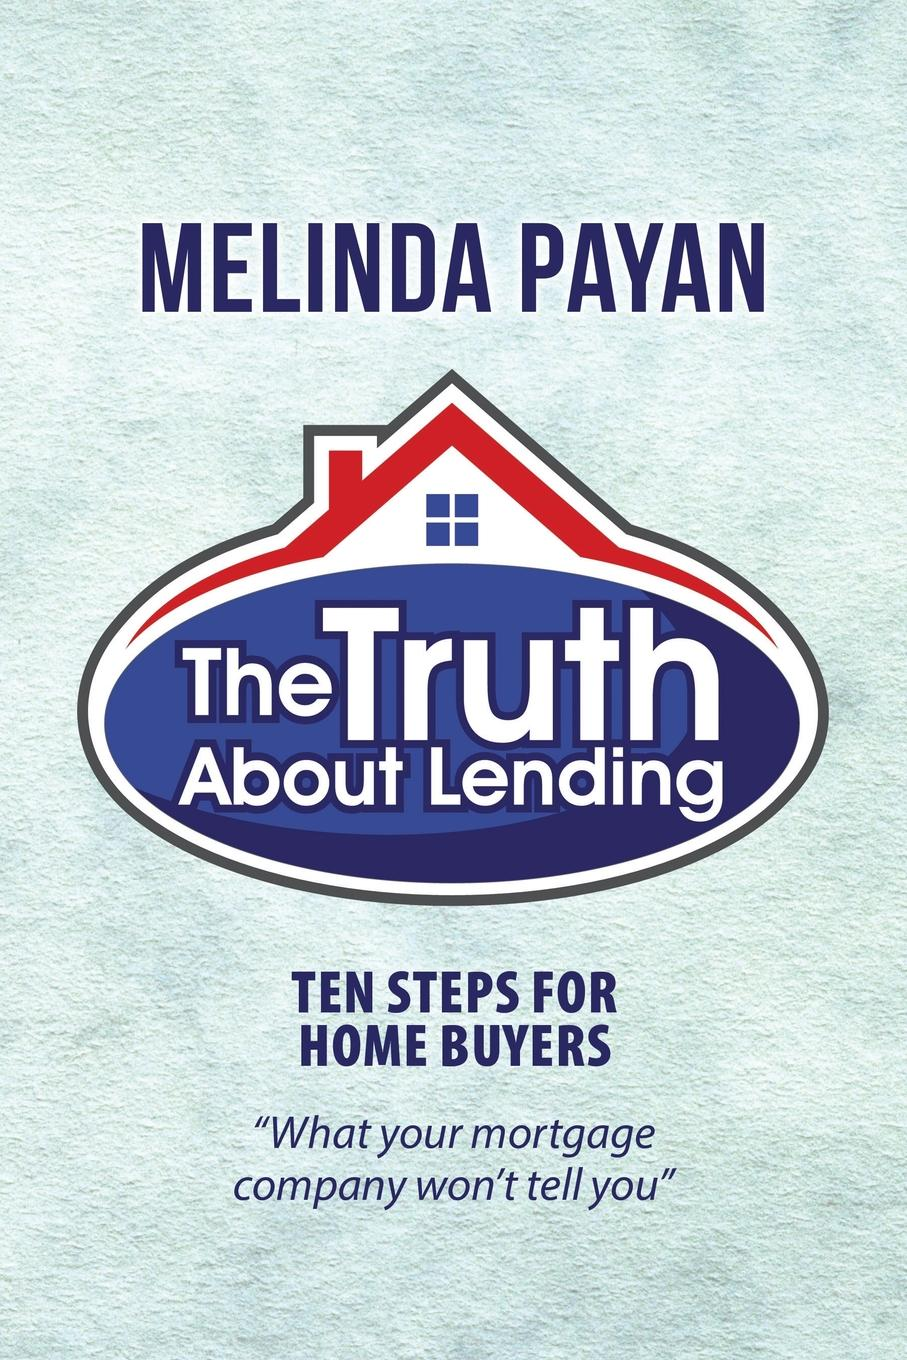 Melinda Payan The Truth About Lending. Ten Steps for Home Buyers the truth about you